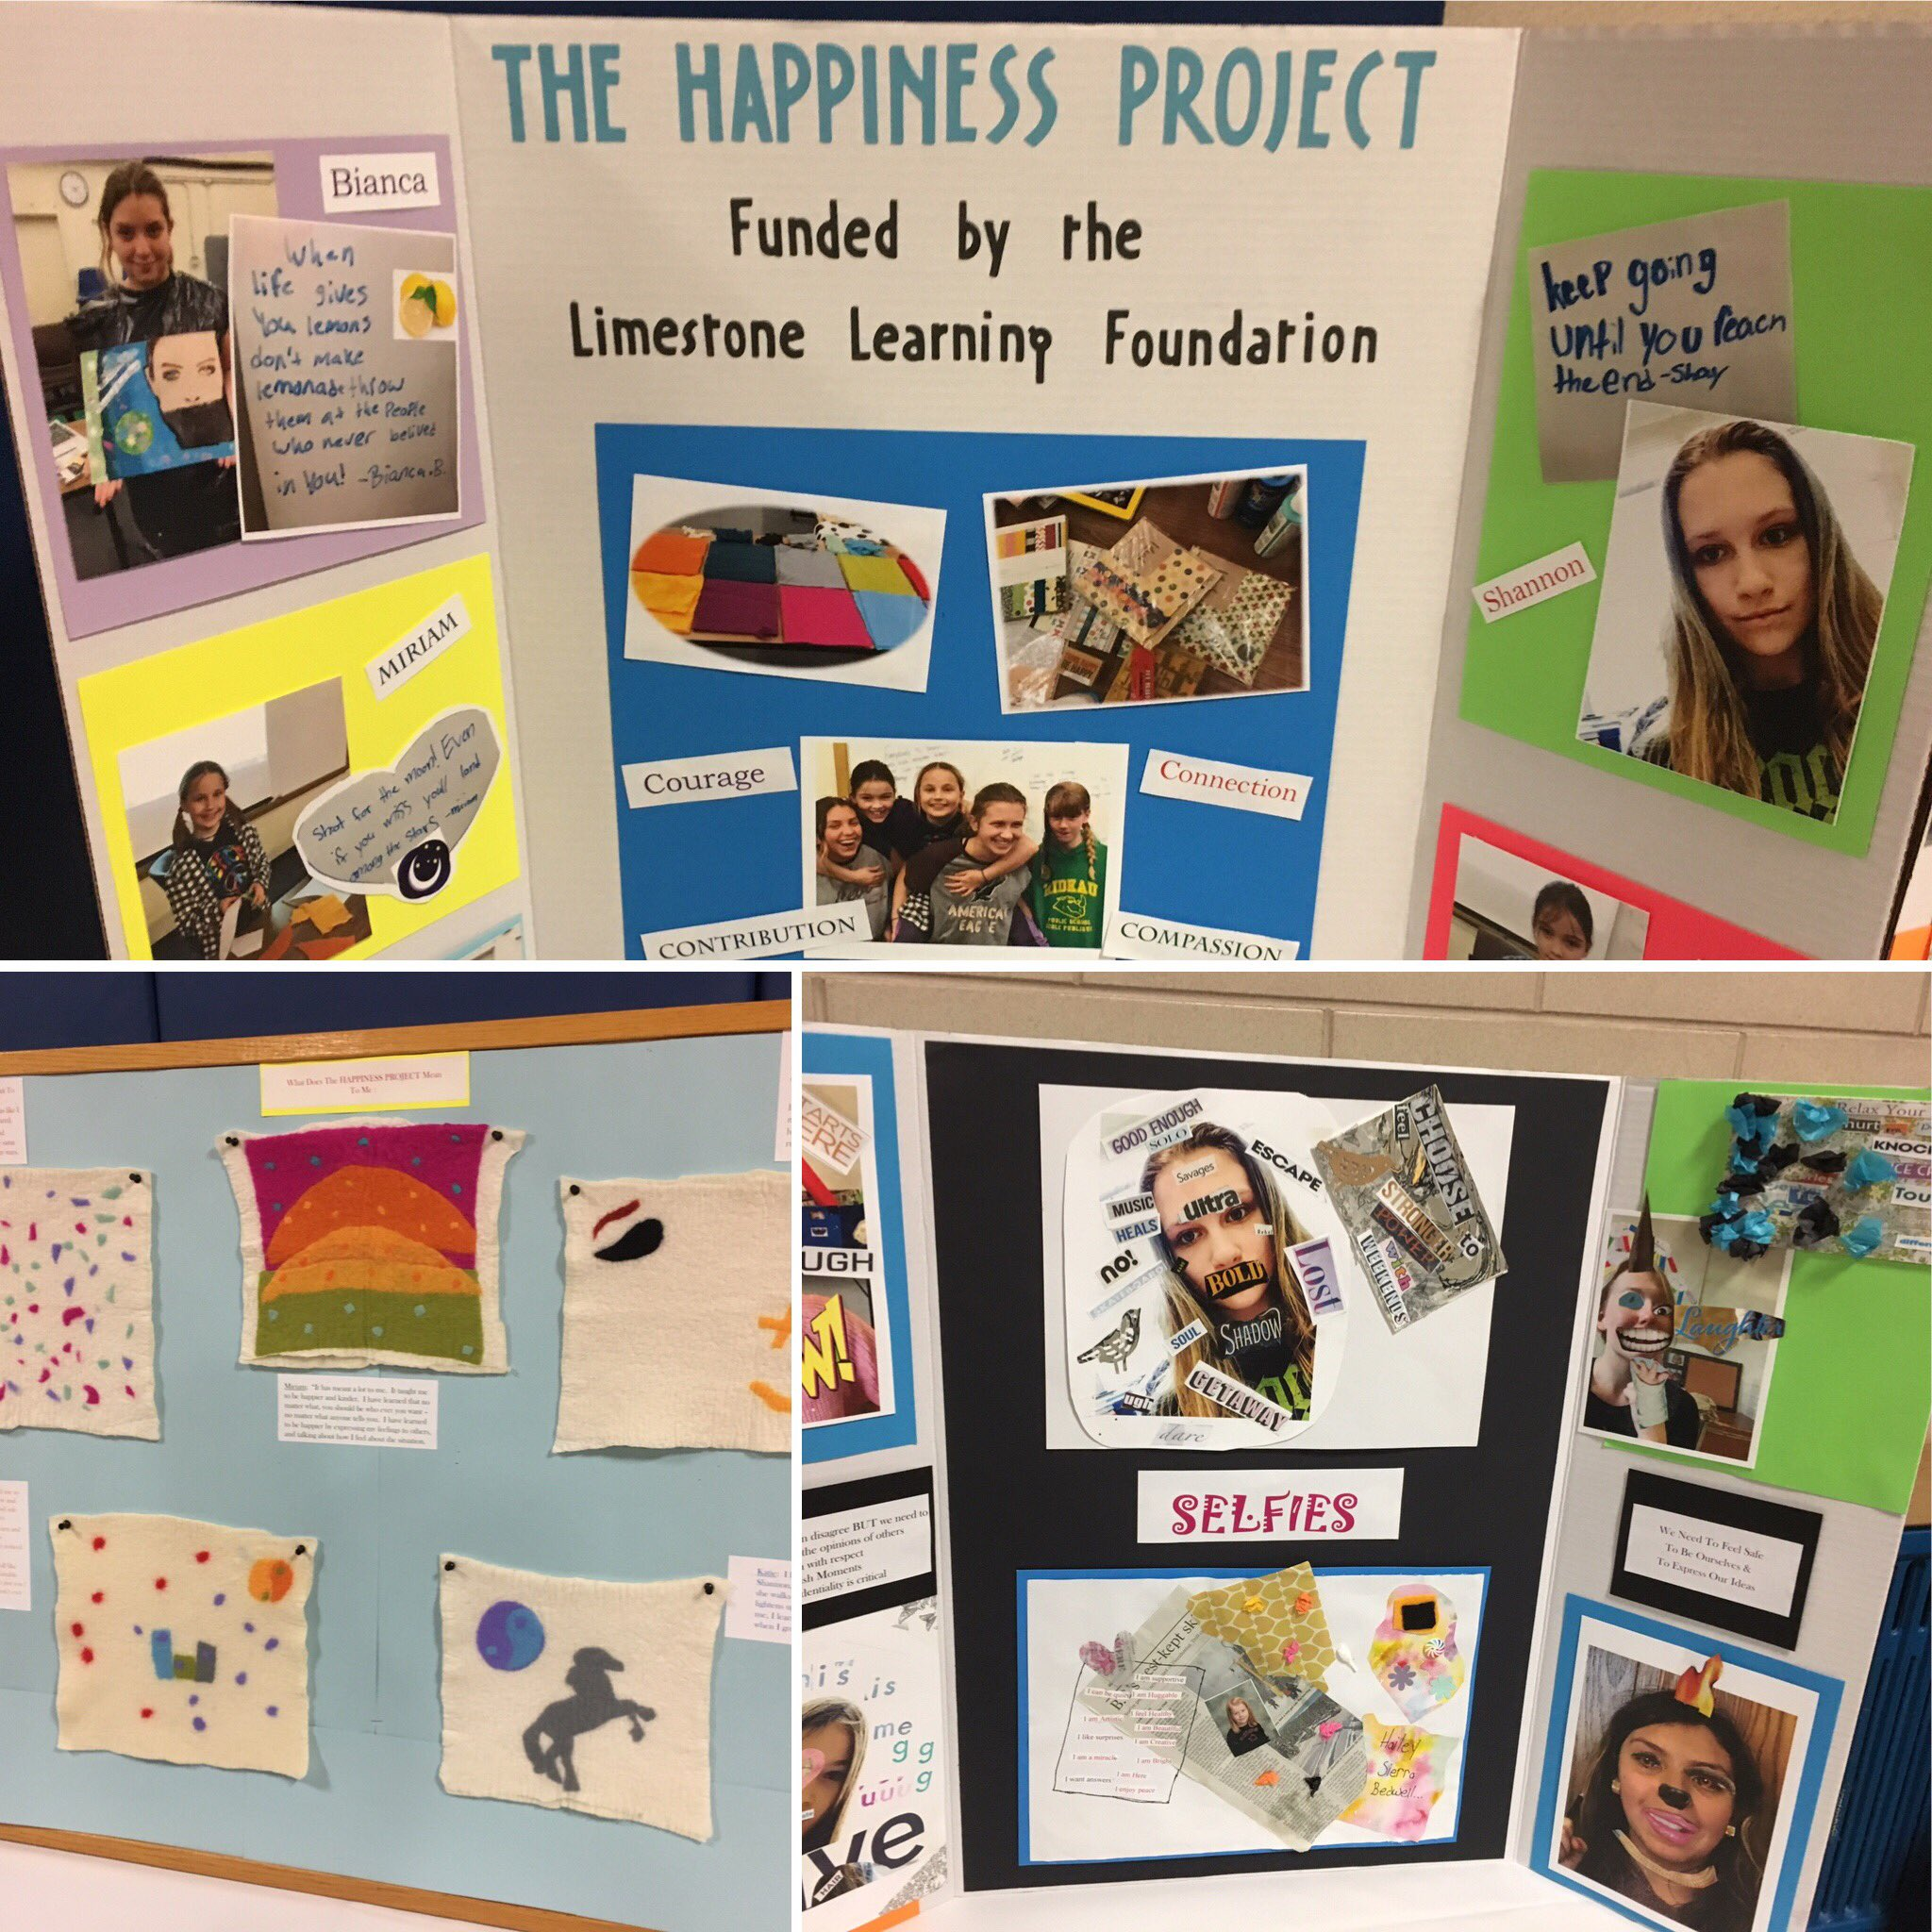 The Happiness Project @RideauPS_LDSB brings young girls together to explore self-identity through art. Ss are passionate about project. https://t.co/88uLAtwYYz